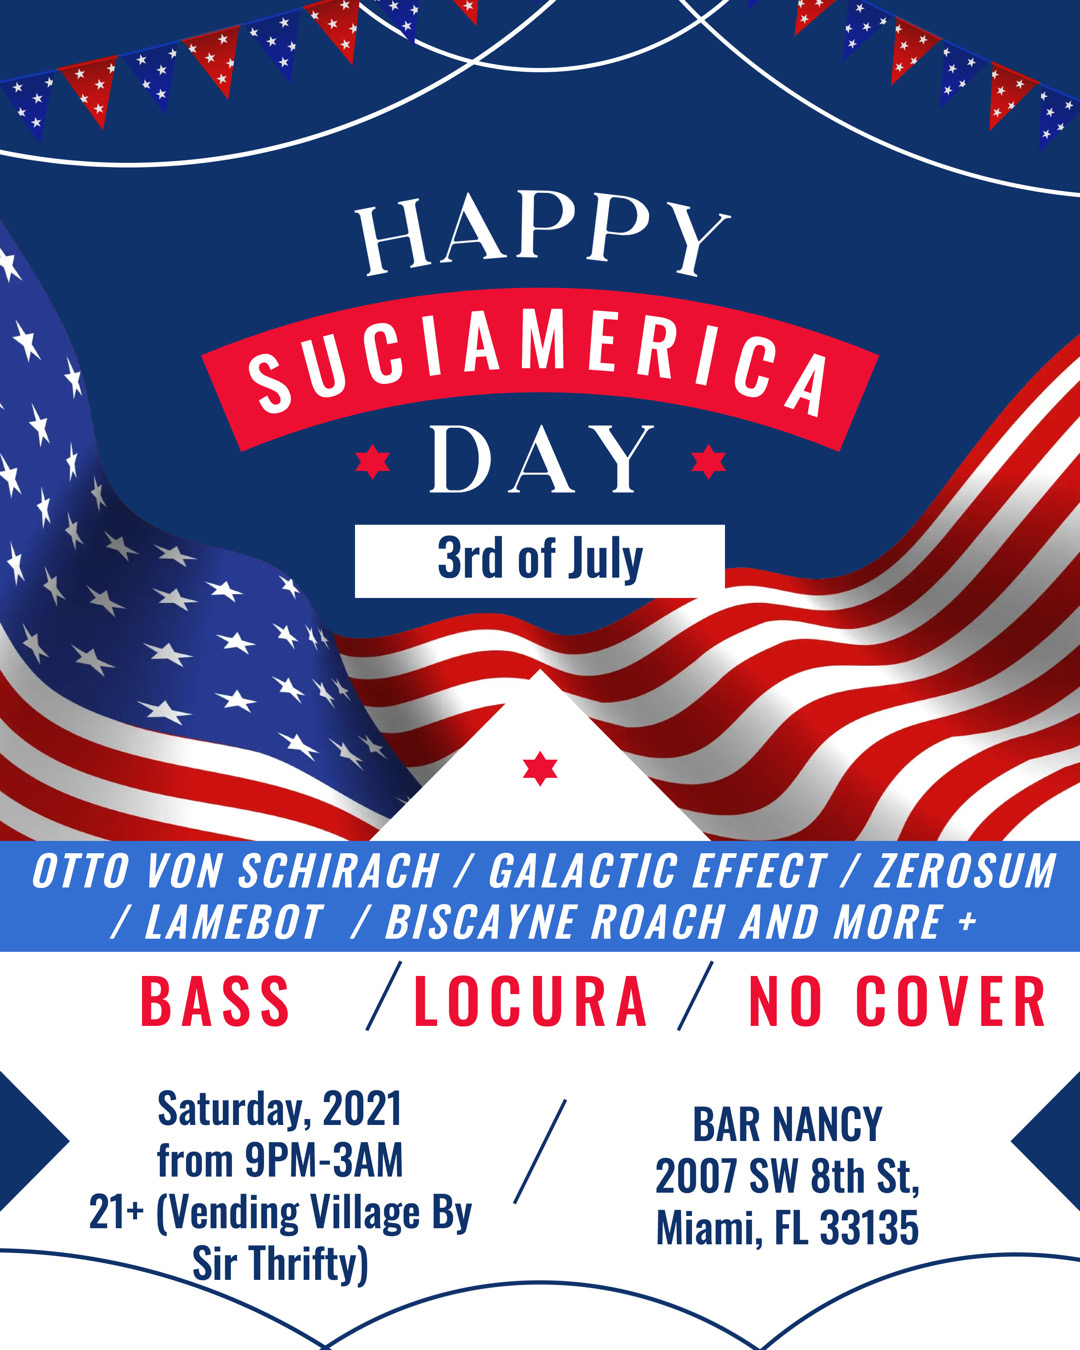 Happy Suciamerica Day - 3rd of July at Bar Nancy